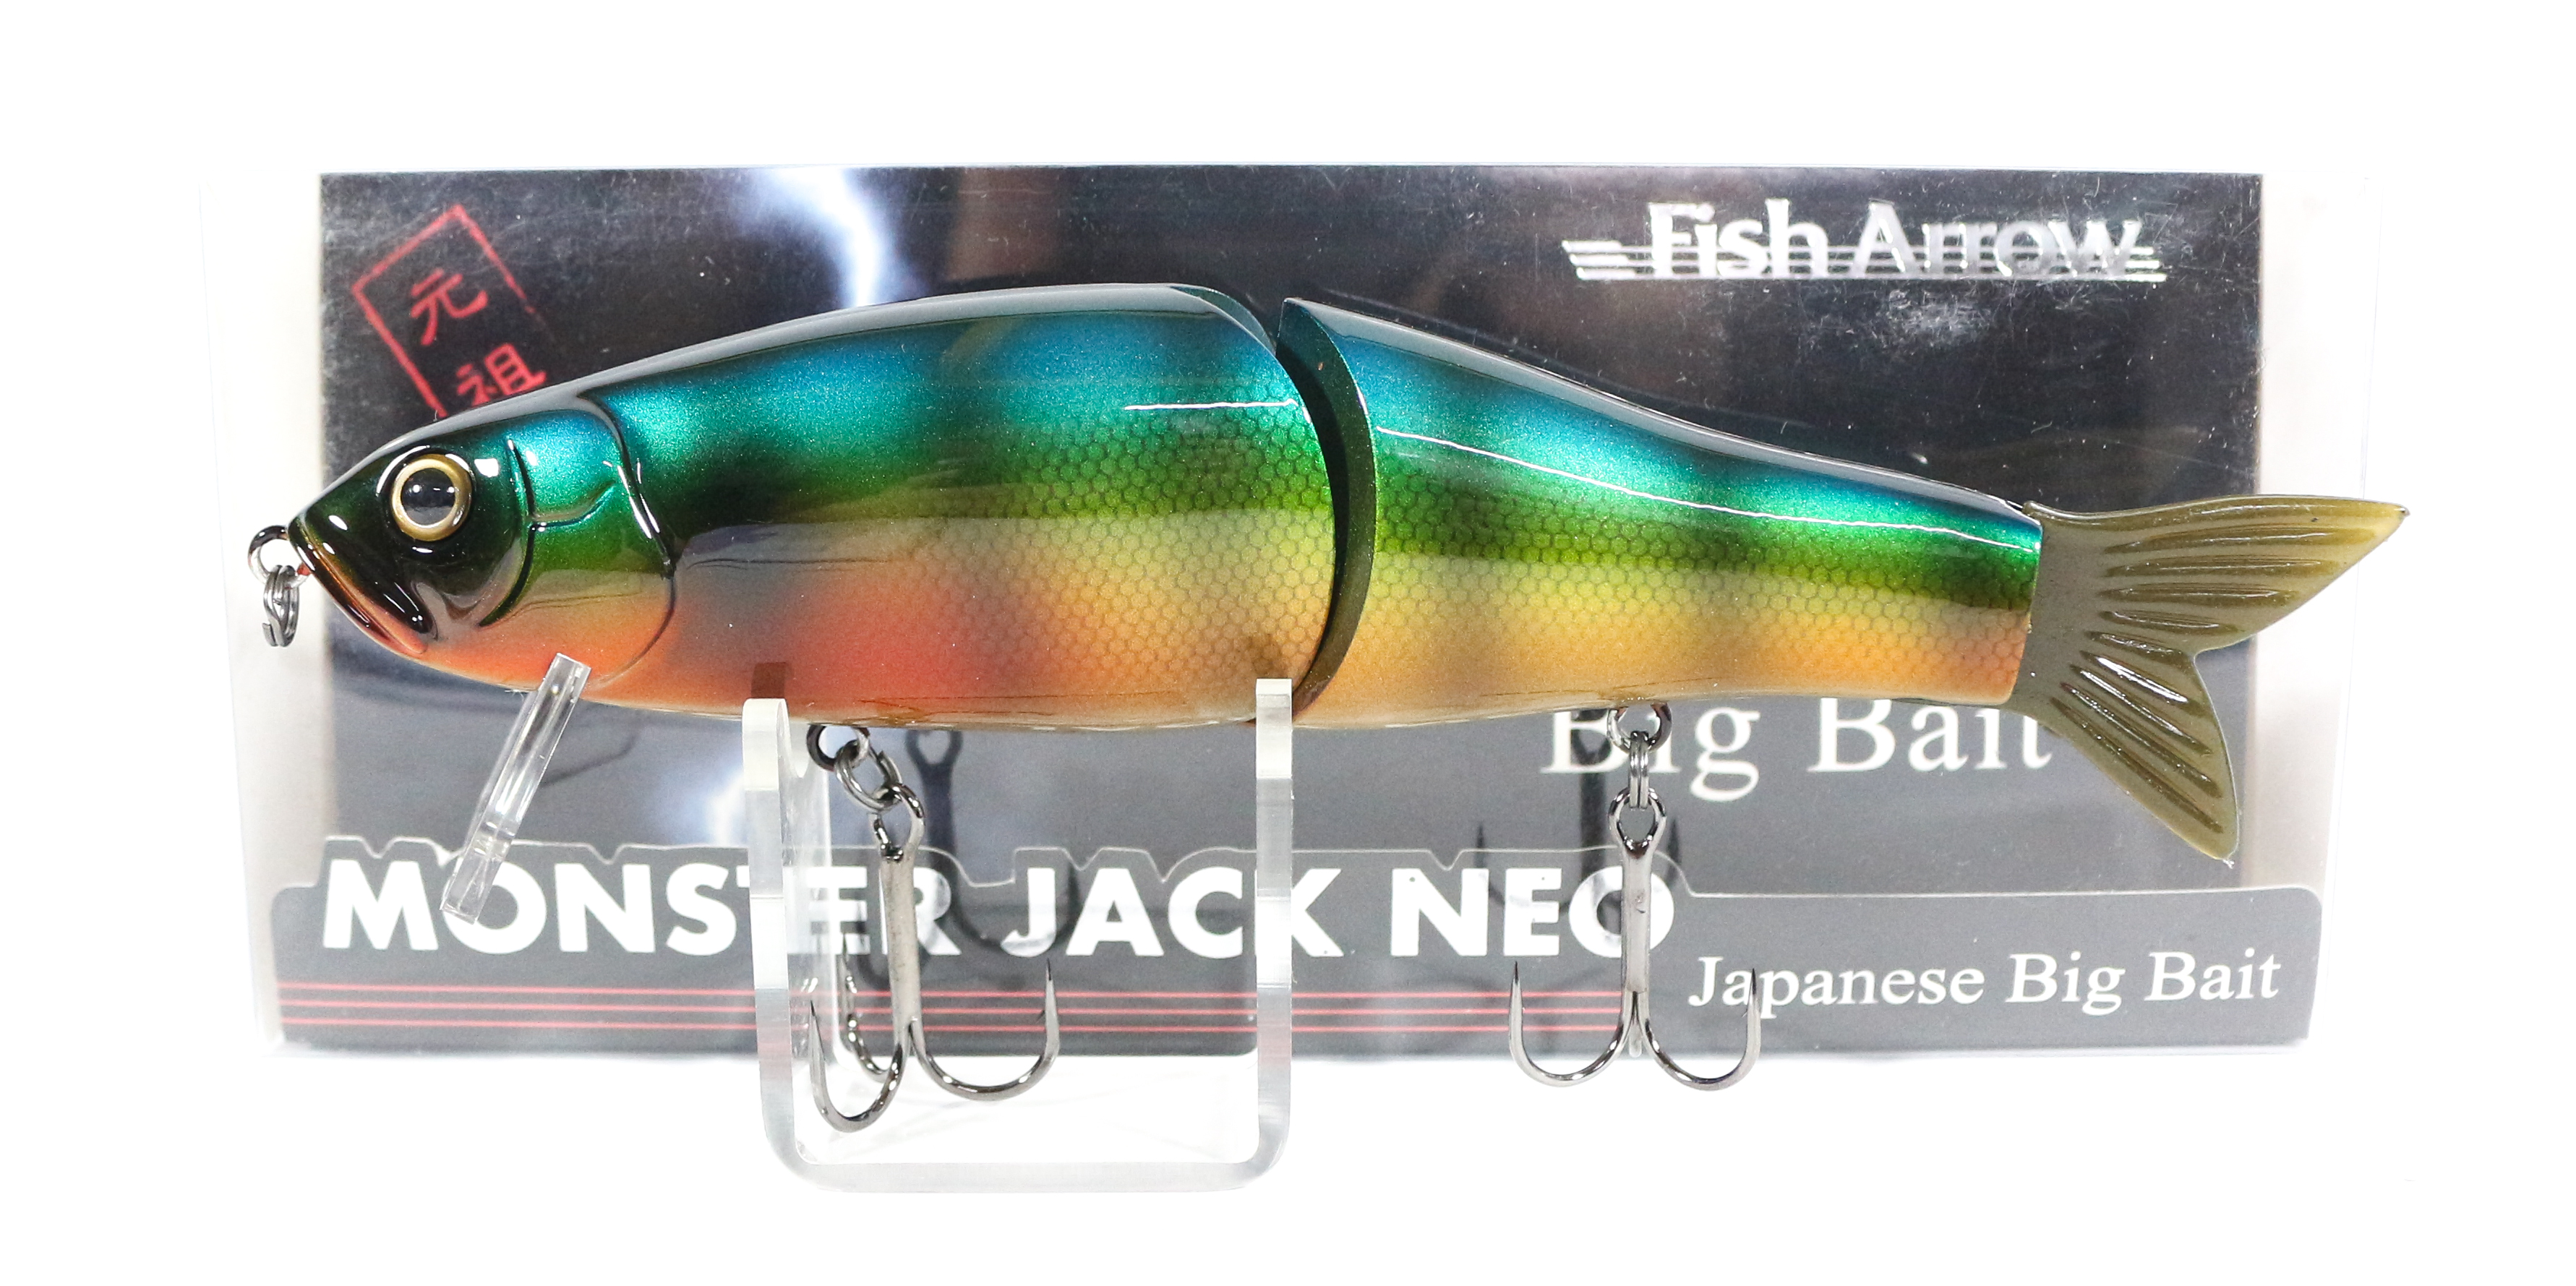 Fish Arrow Monster Jack Neo Big Bait Floating Lure 0356 (9280)